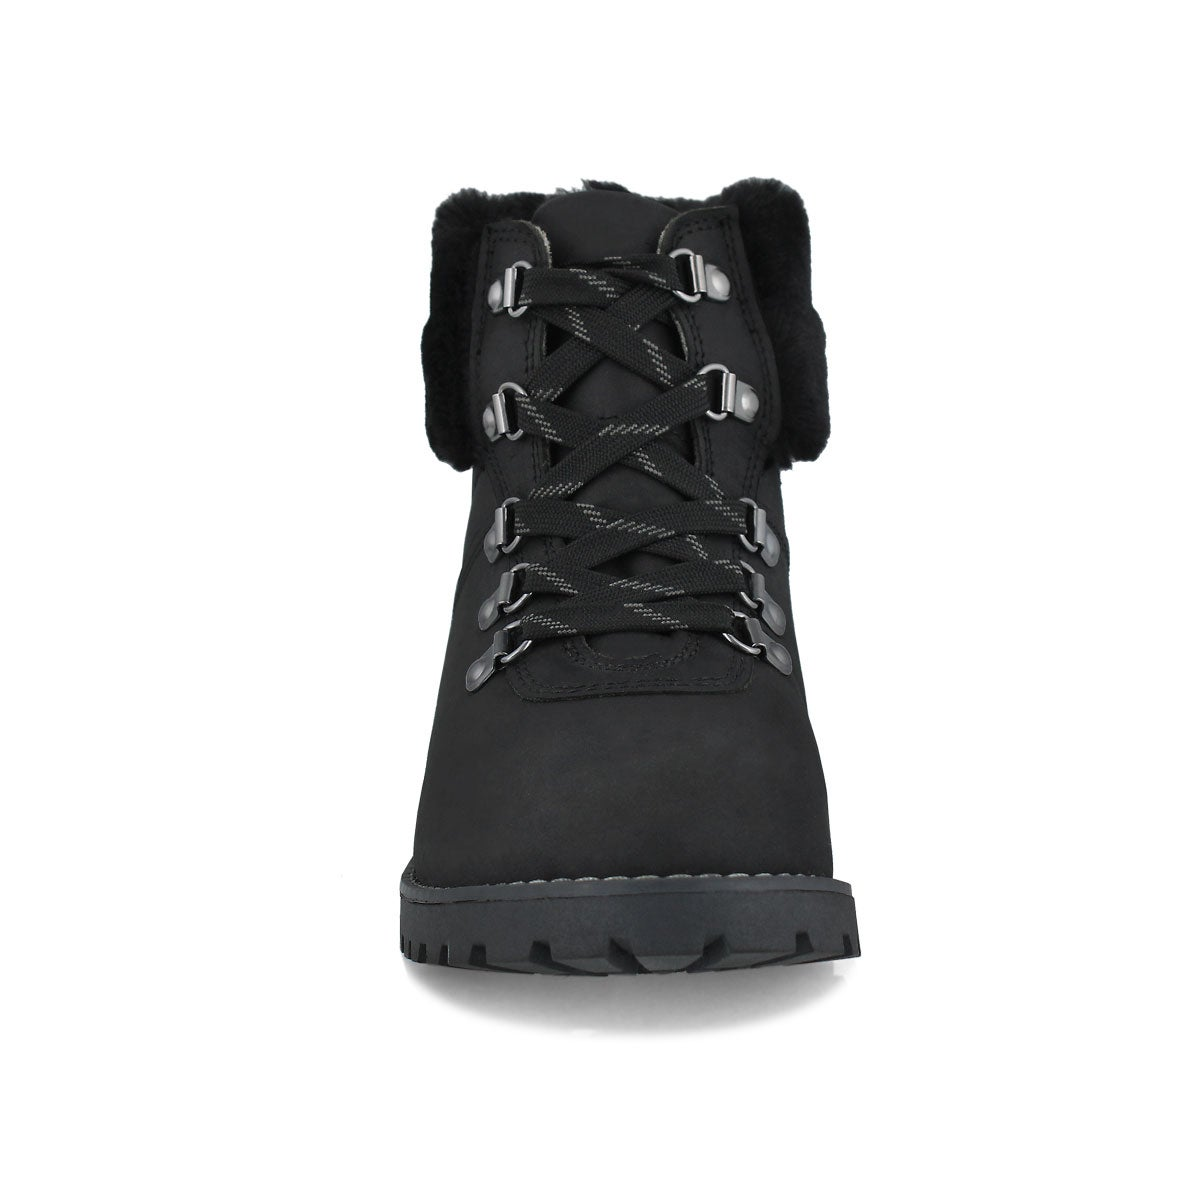 Lds Chambly black wtpf winter boot